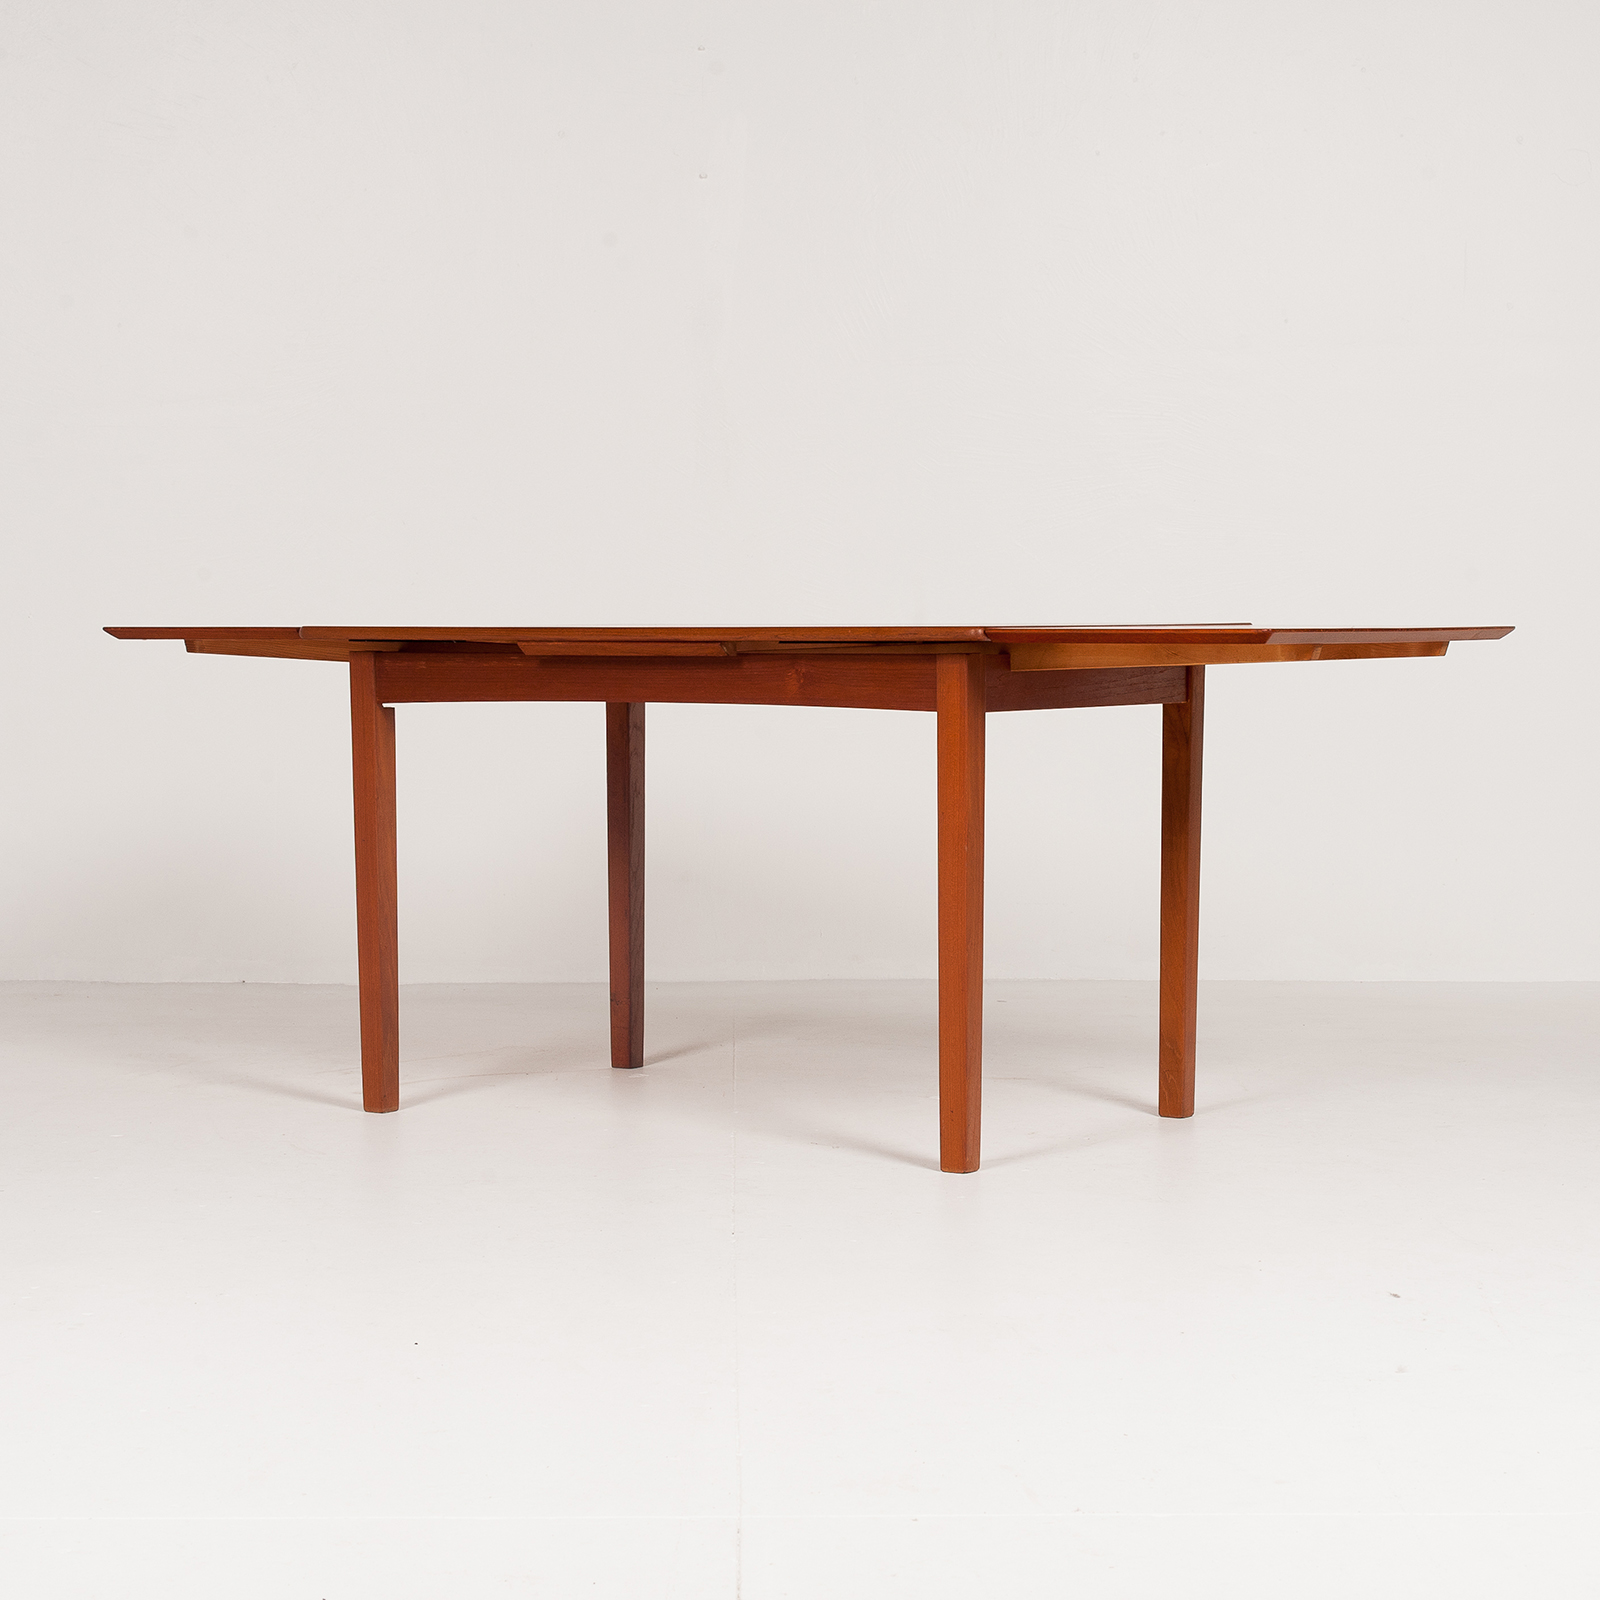 Rectangular Extension Dining Table In Teak With Square Legs, 1960s, Denmark6010